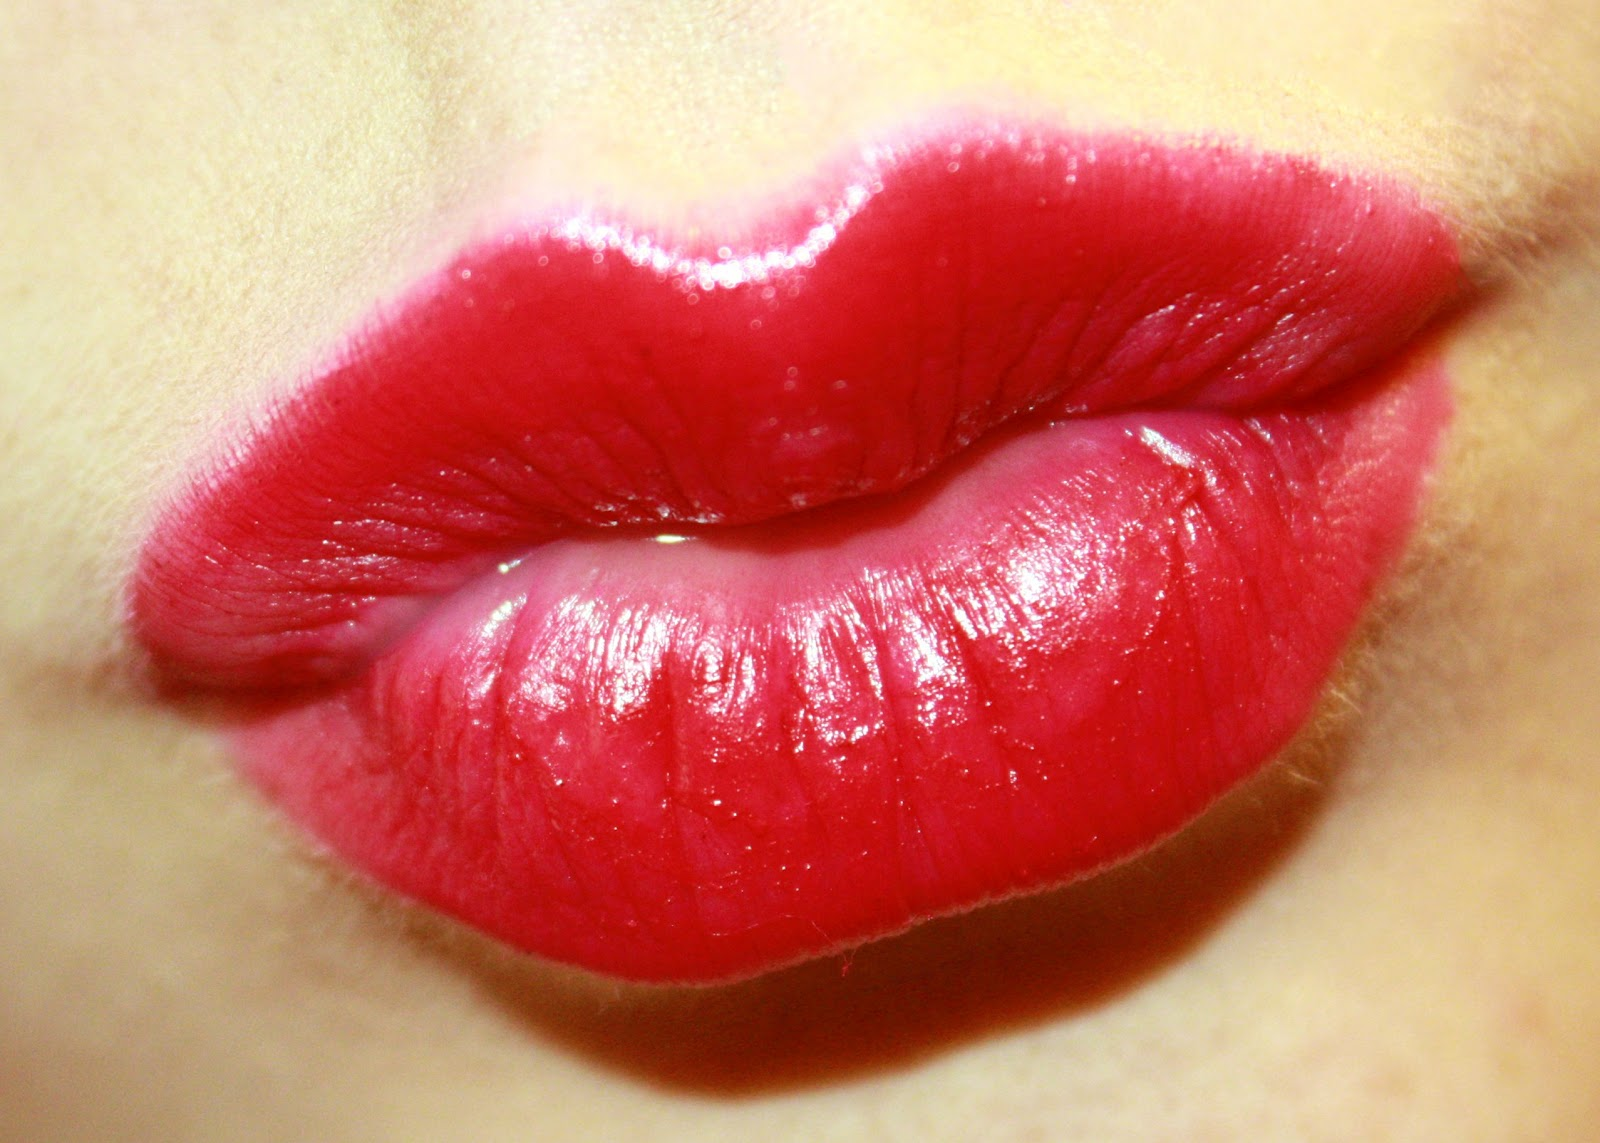 Lip Kiss Pic (56+) Lip Kiss Pic Backgrounds